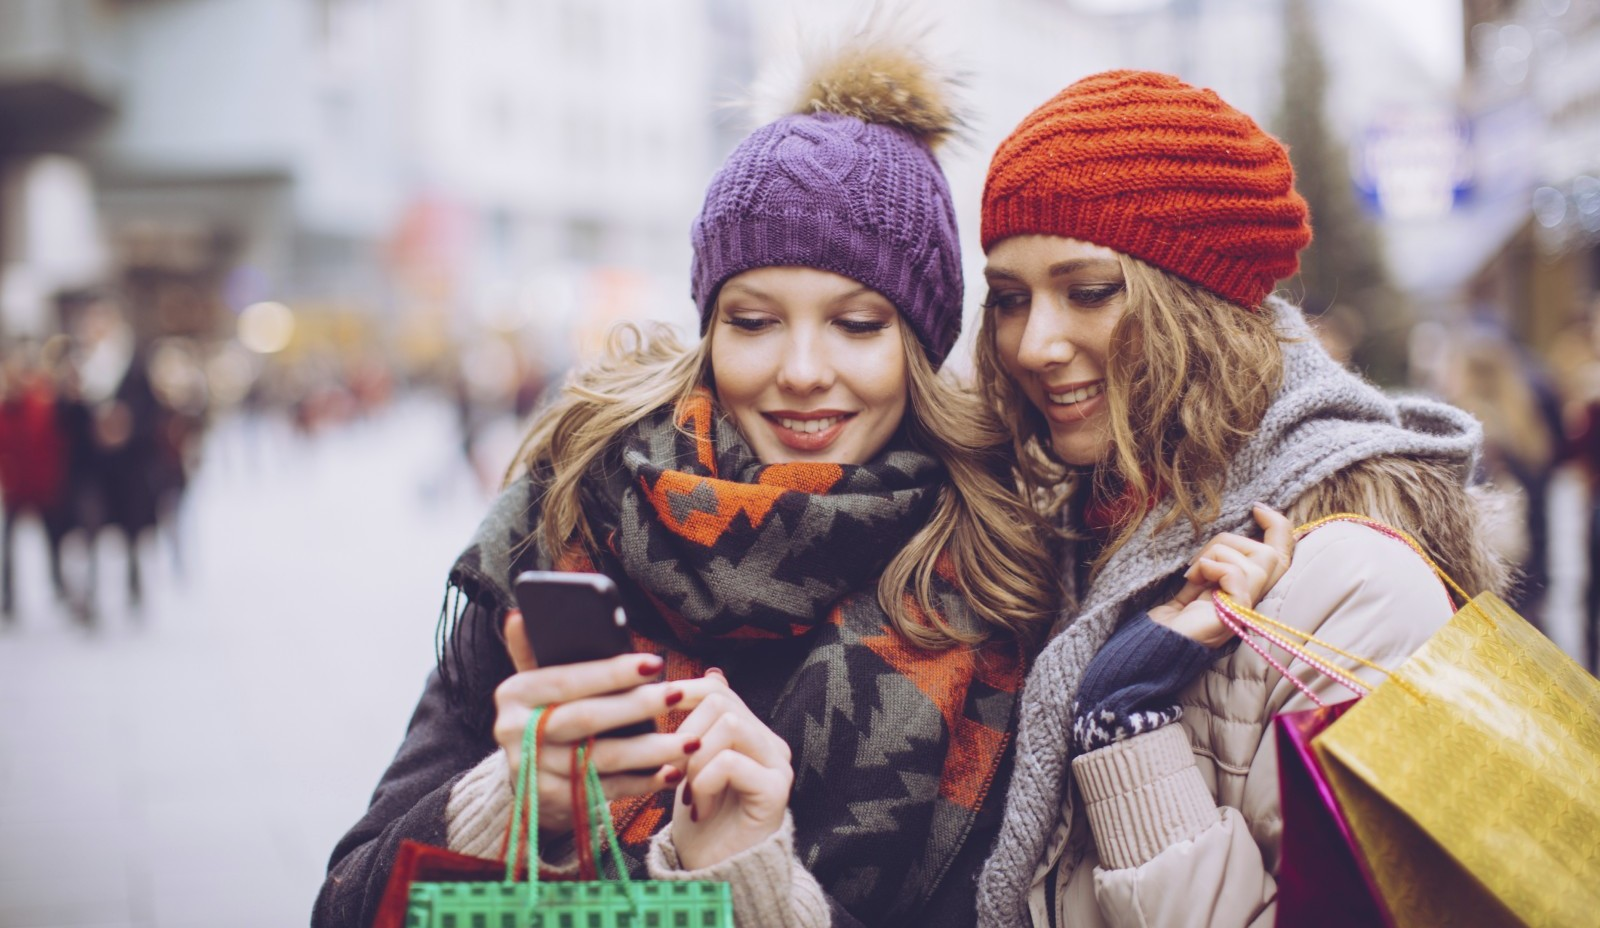 The Retailer's Guide to Understanding the 2015 Holiday Shopper